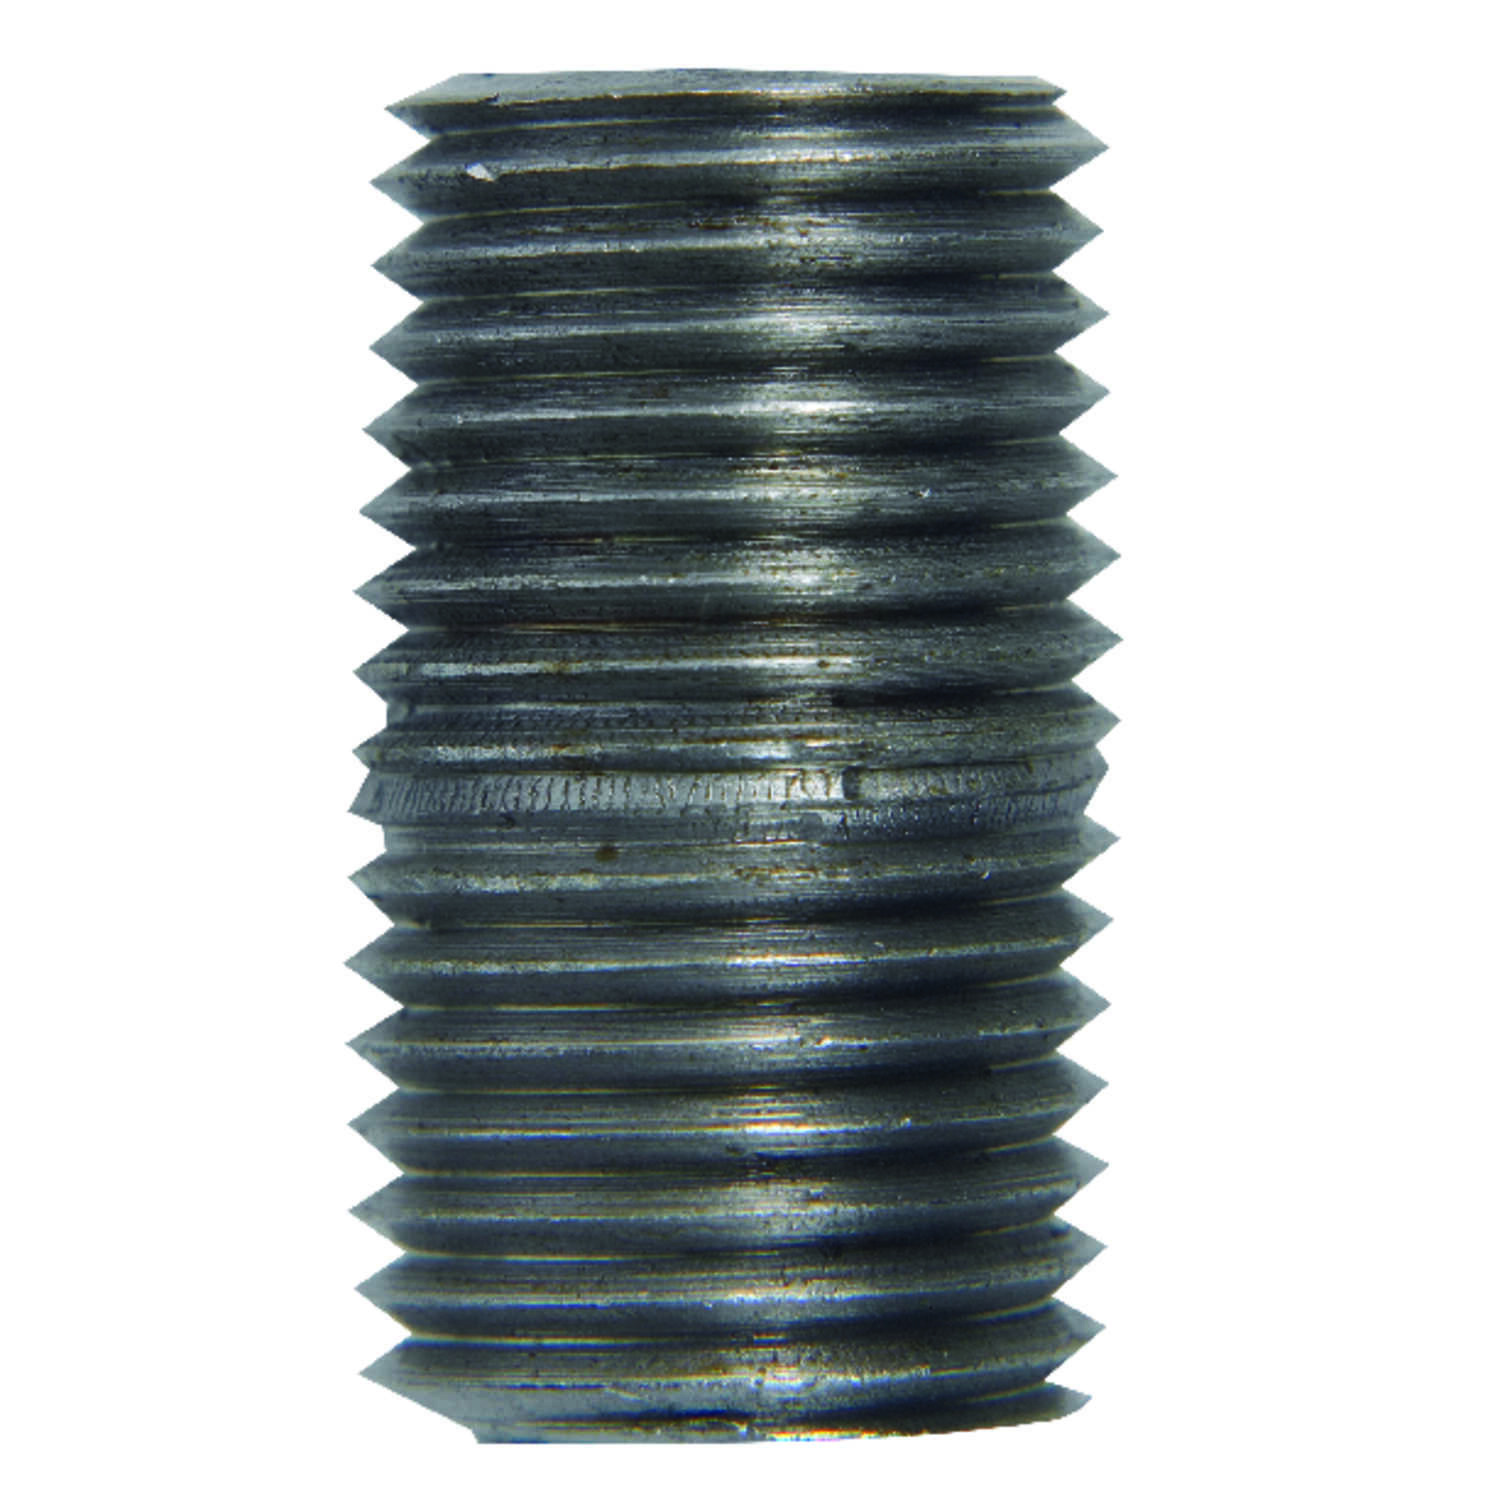 B & K  Southland  2-1/2 in. MPT   x 2-1/2 in. Dia. x 2-1/2 in. L MPT  Galvanized  Steel  Pipe Nipple